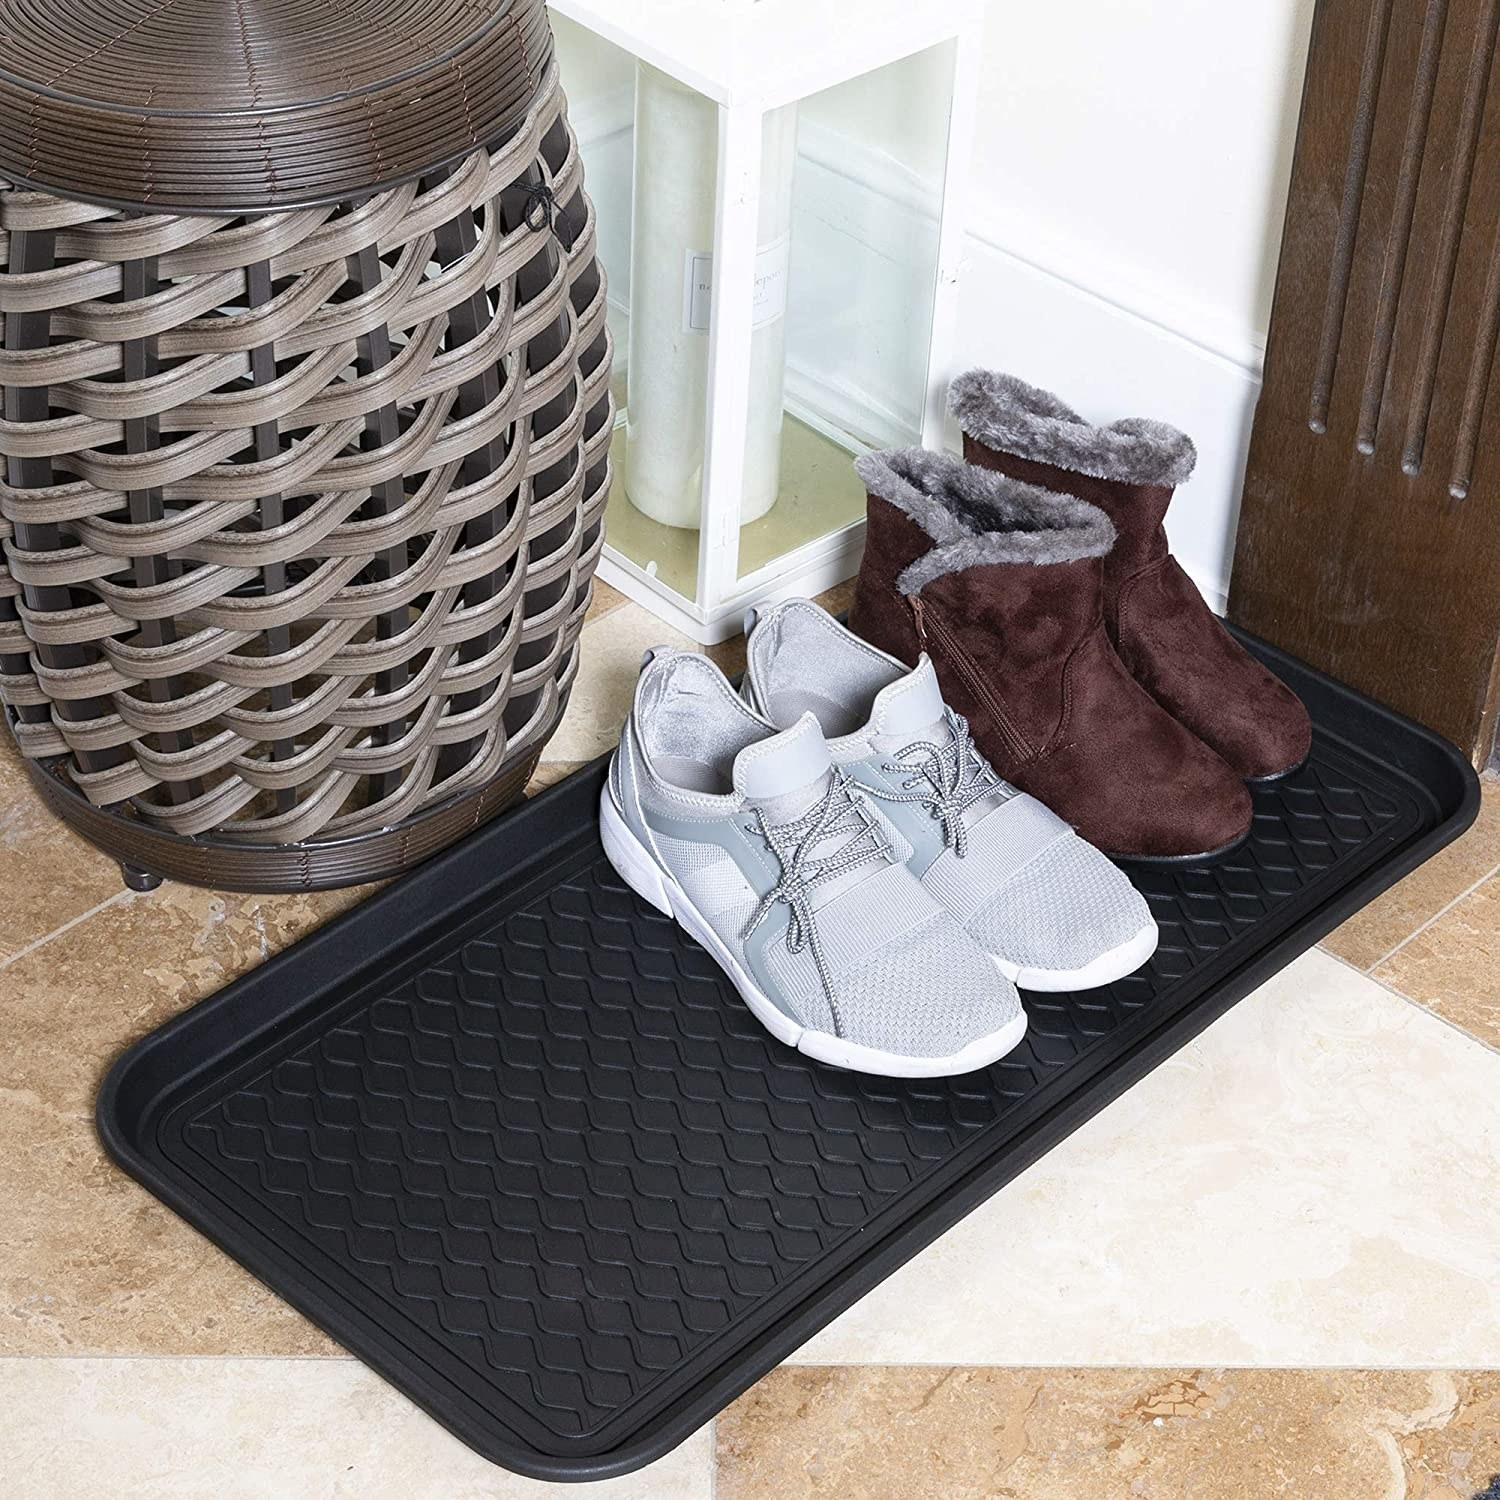 the boot tray in an entryway